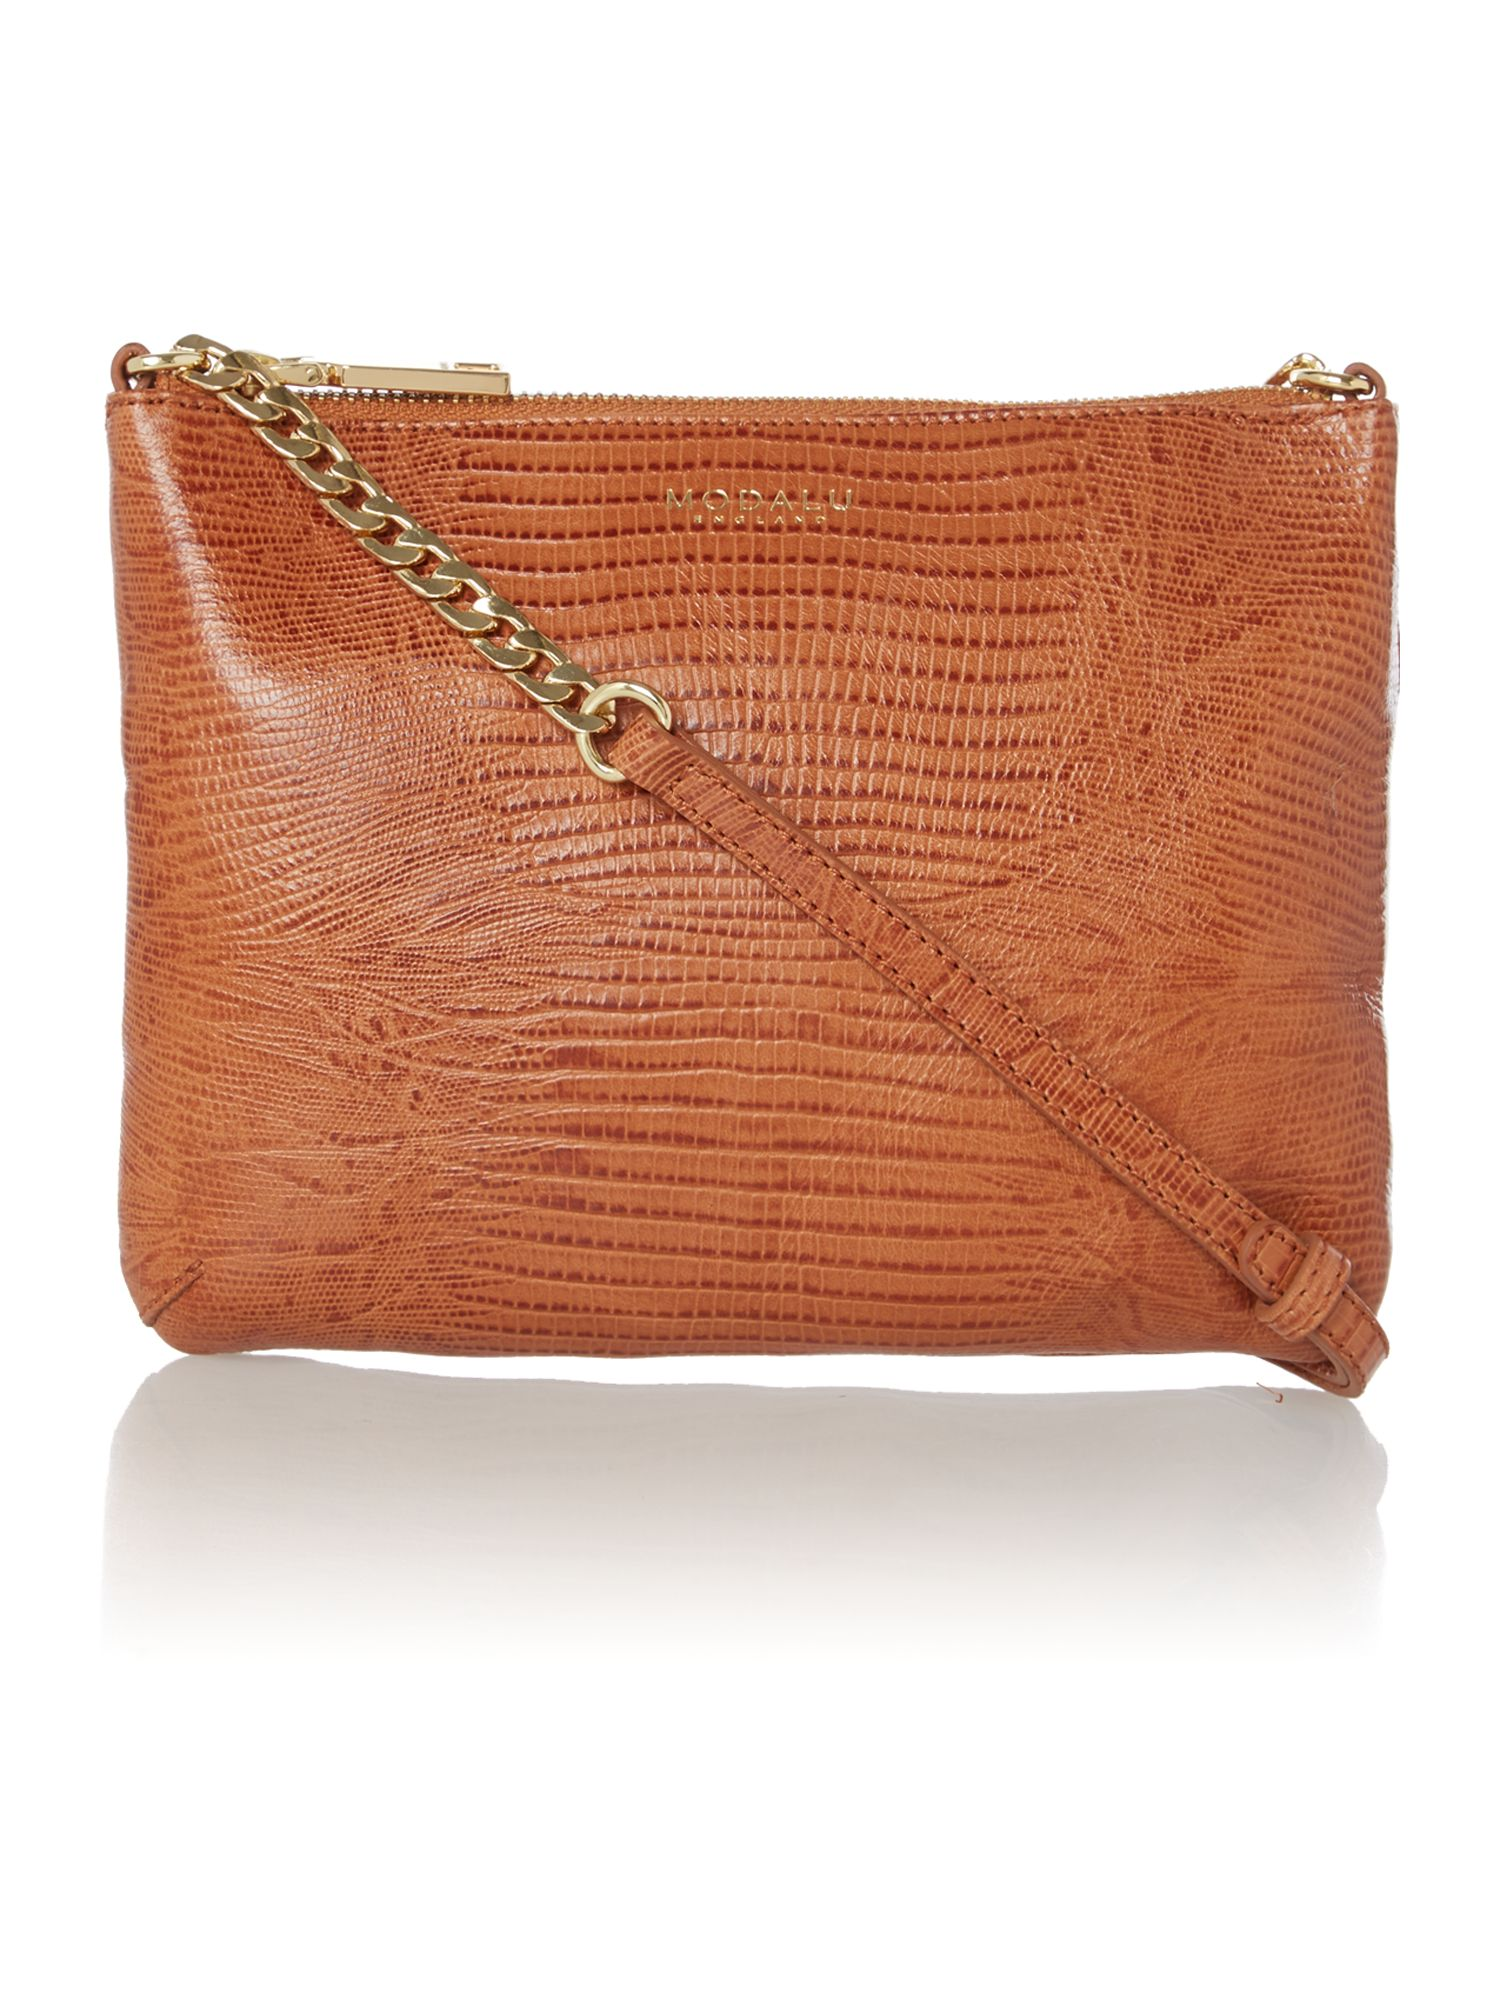 Twiggy tan cross body bag